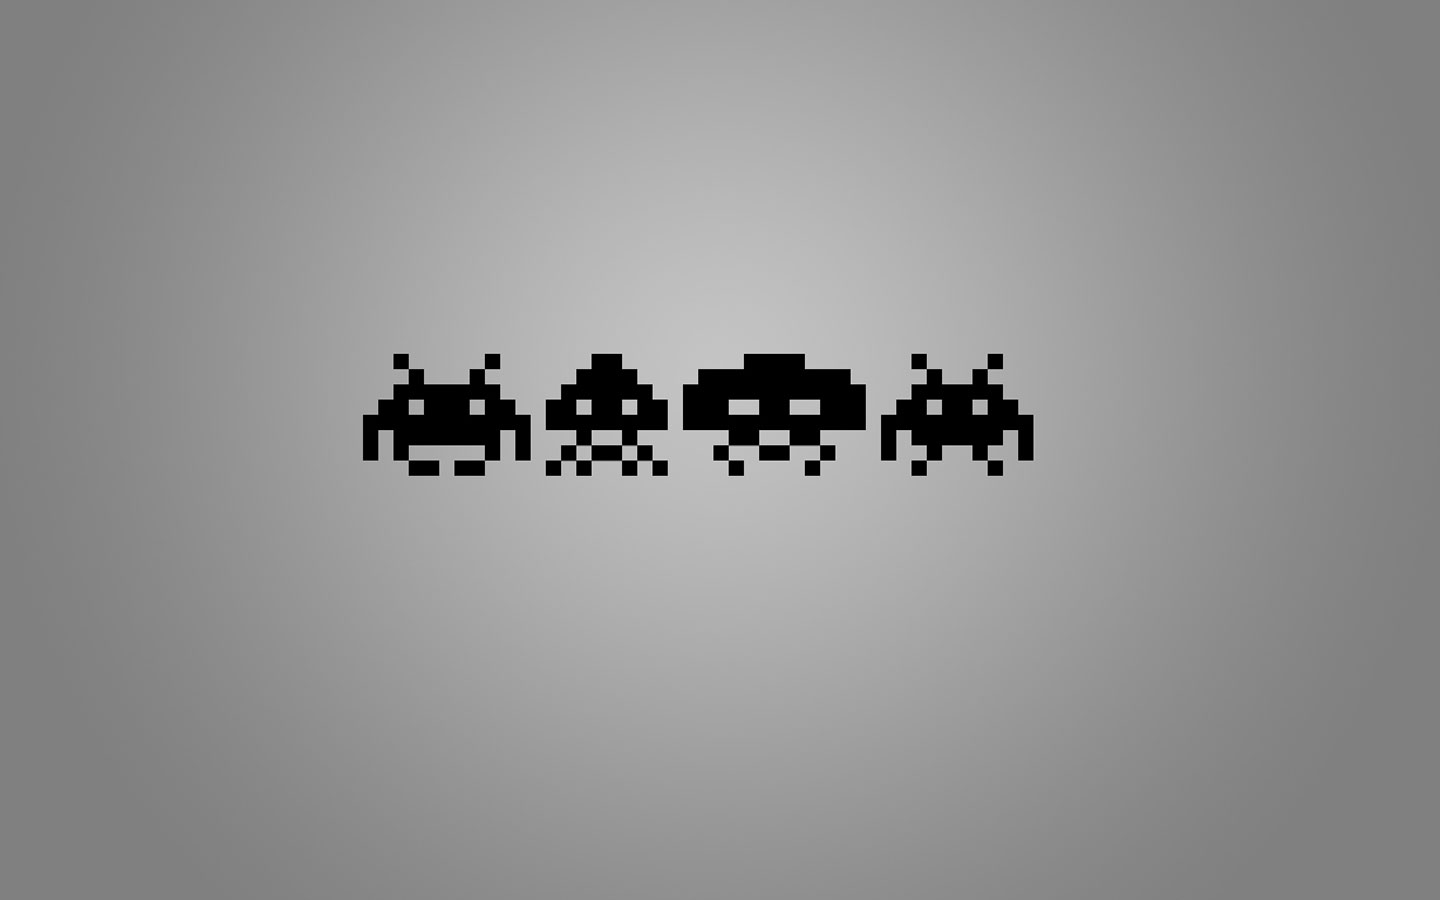 space invaders 37587